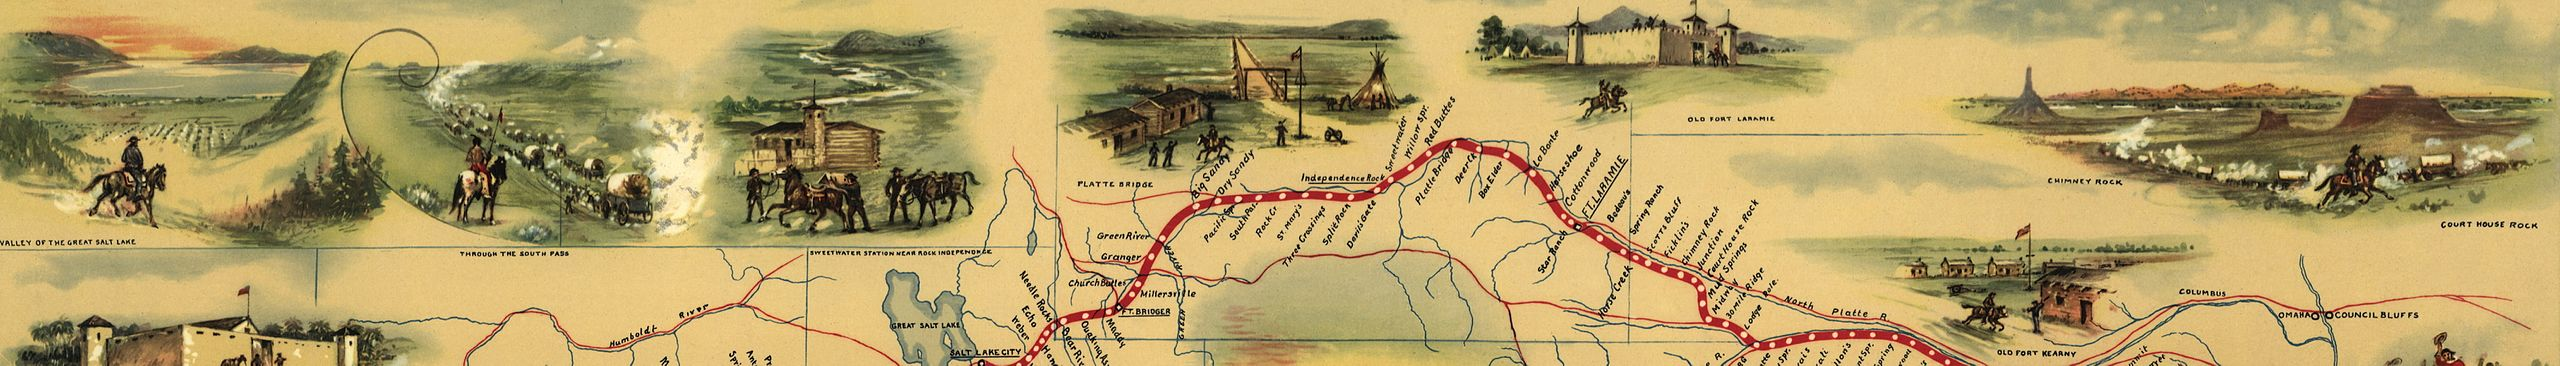 Pony Express National Historic Trail Travel Guide At Wikivoyage